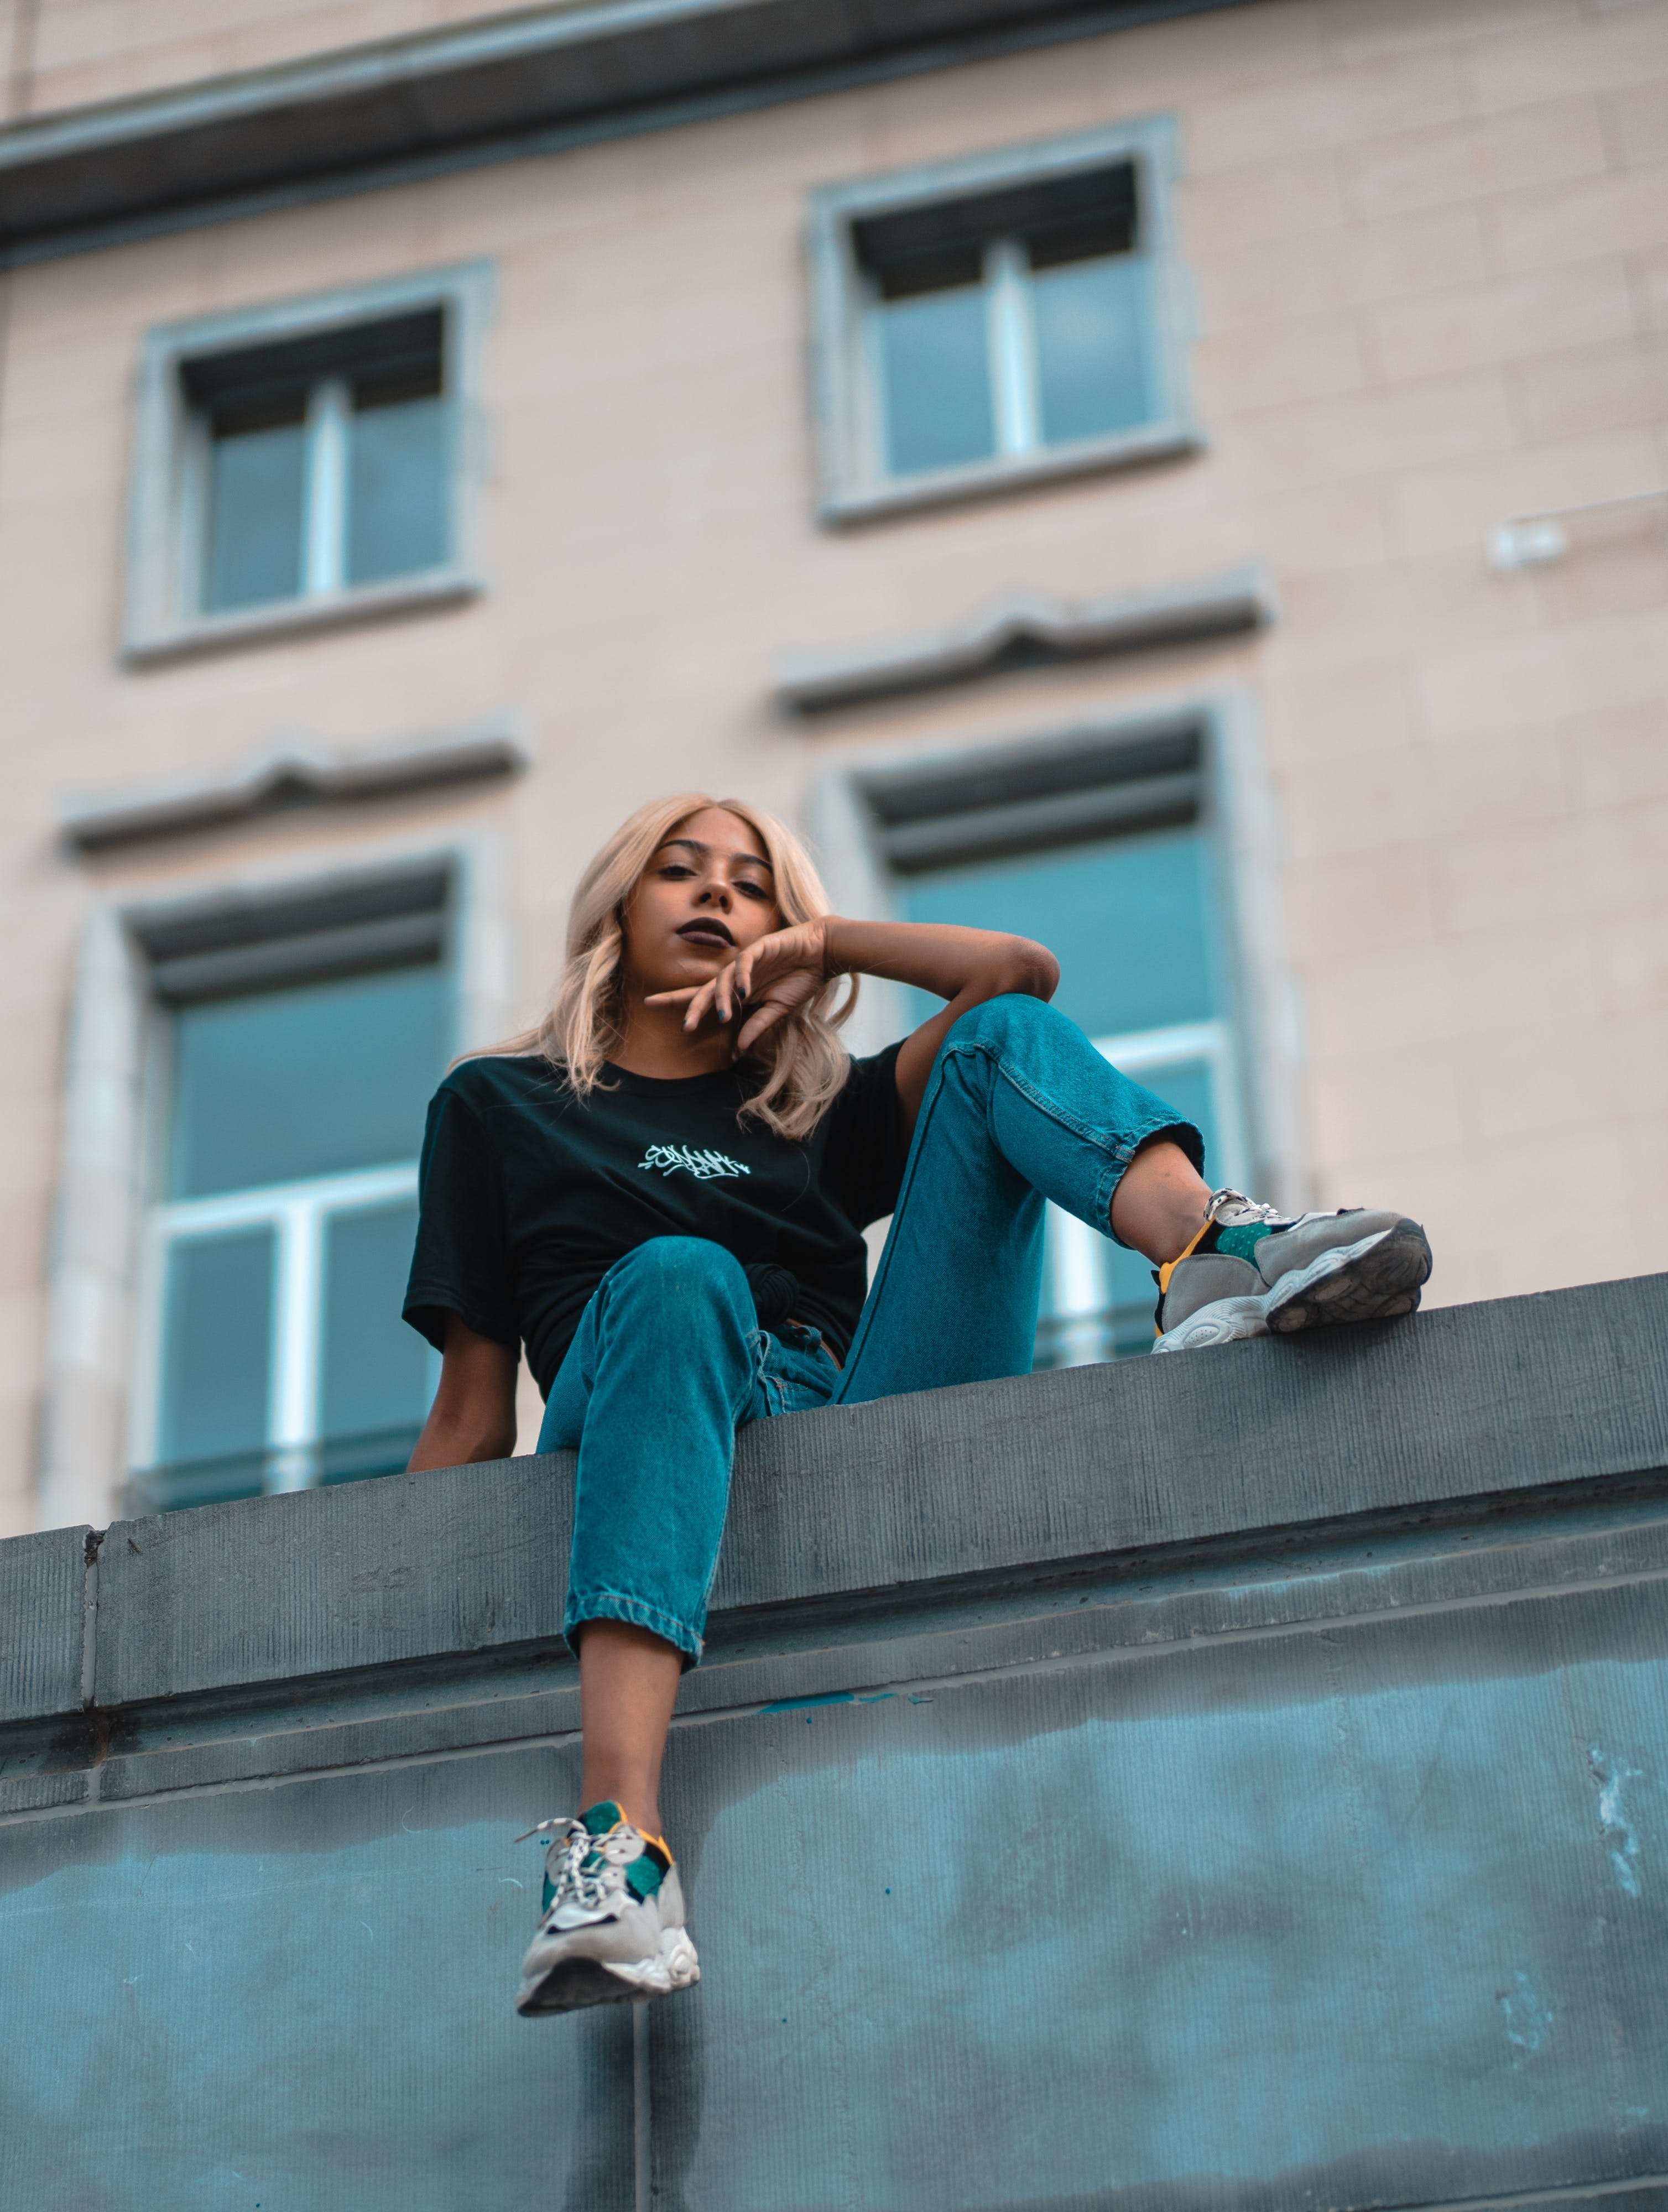 Woman With Blond Hair Sits on Top of the Building